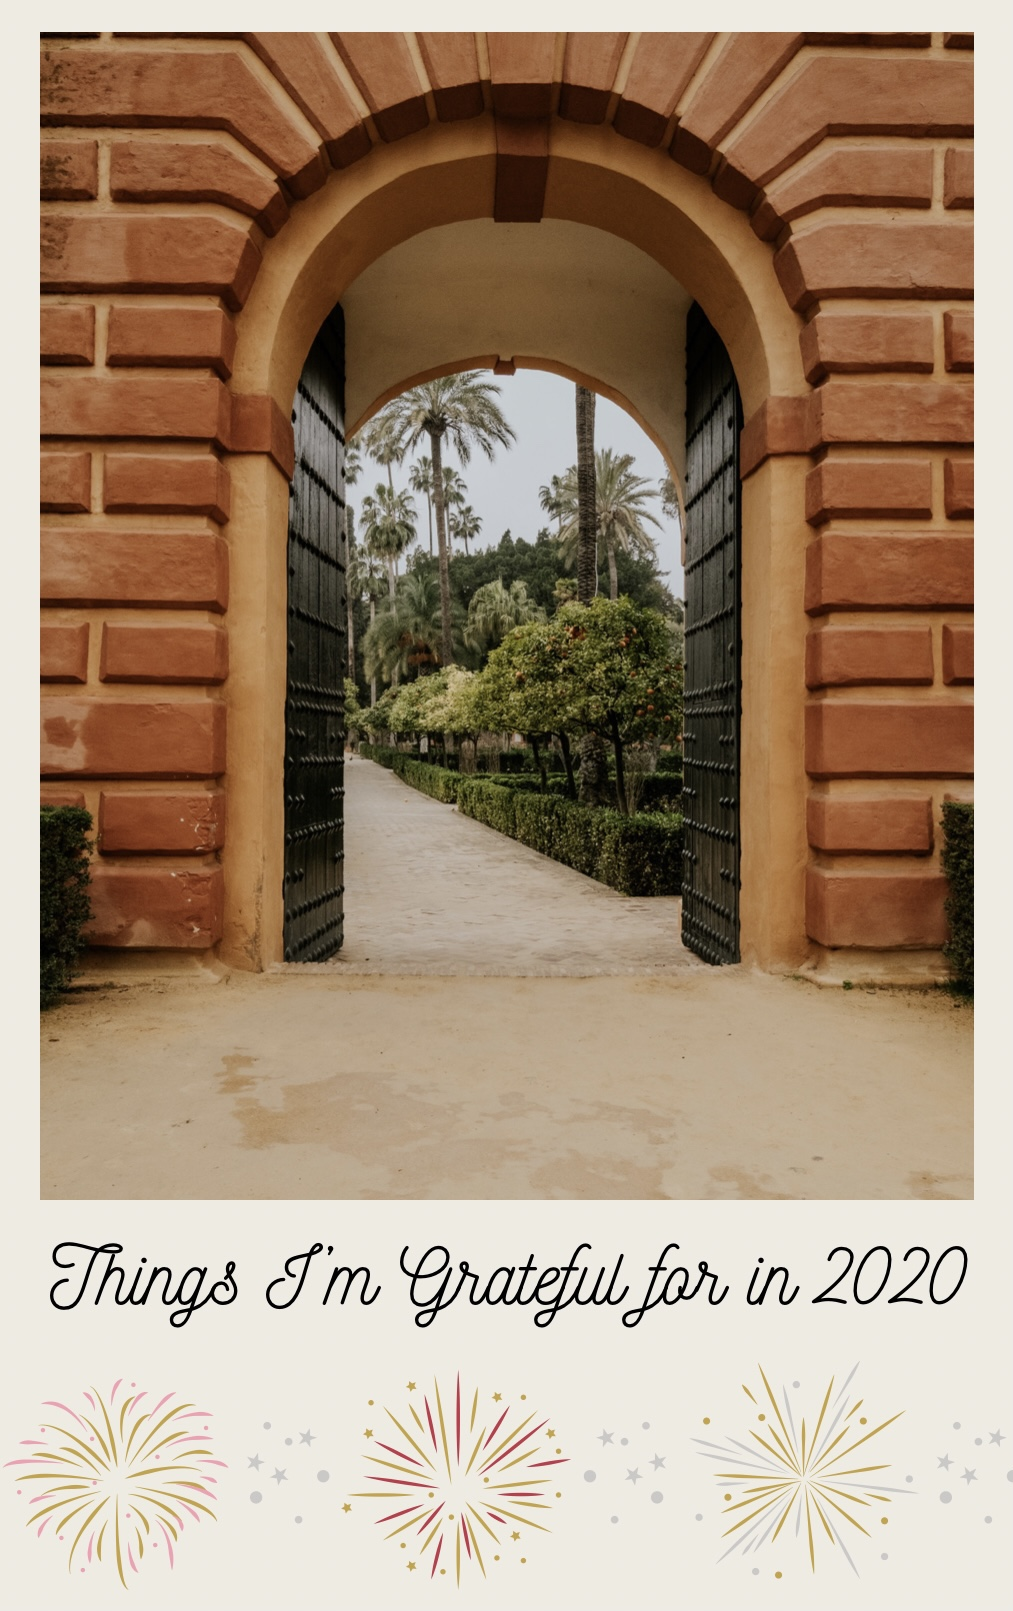 Things I'm grateful for in 2020